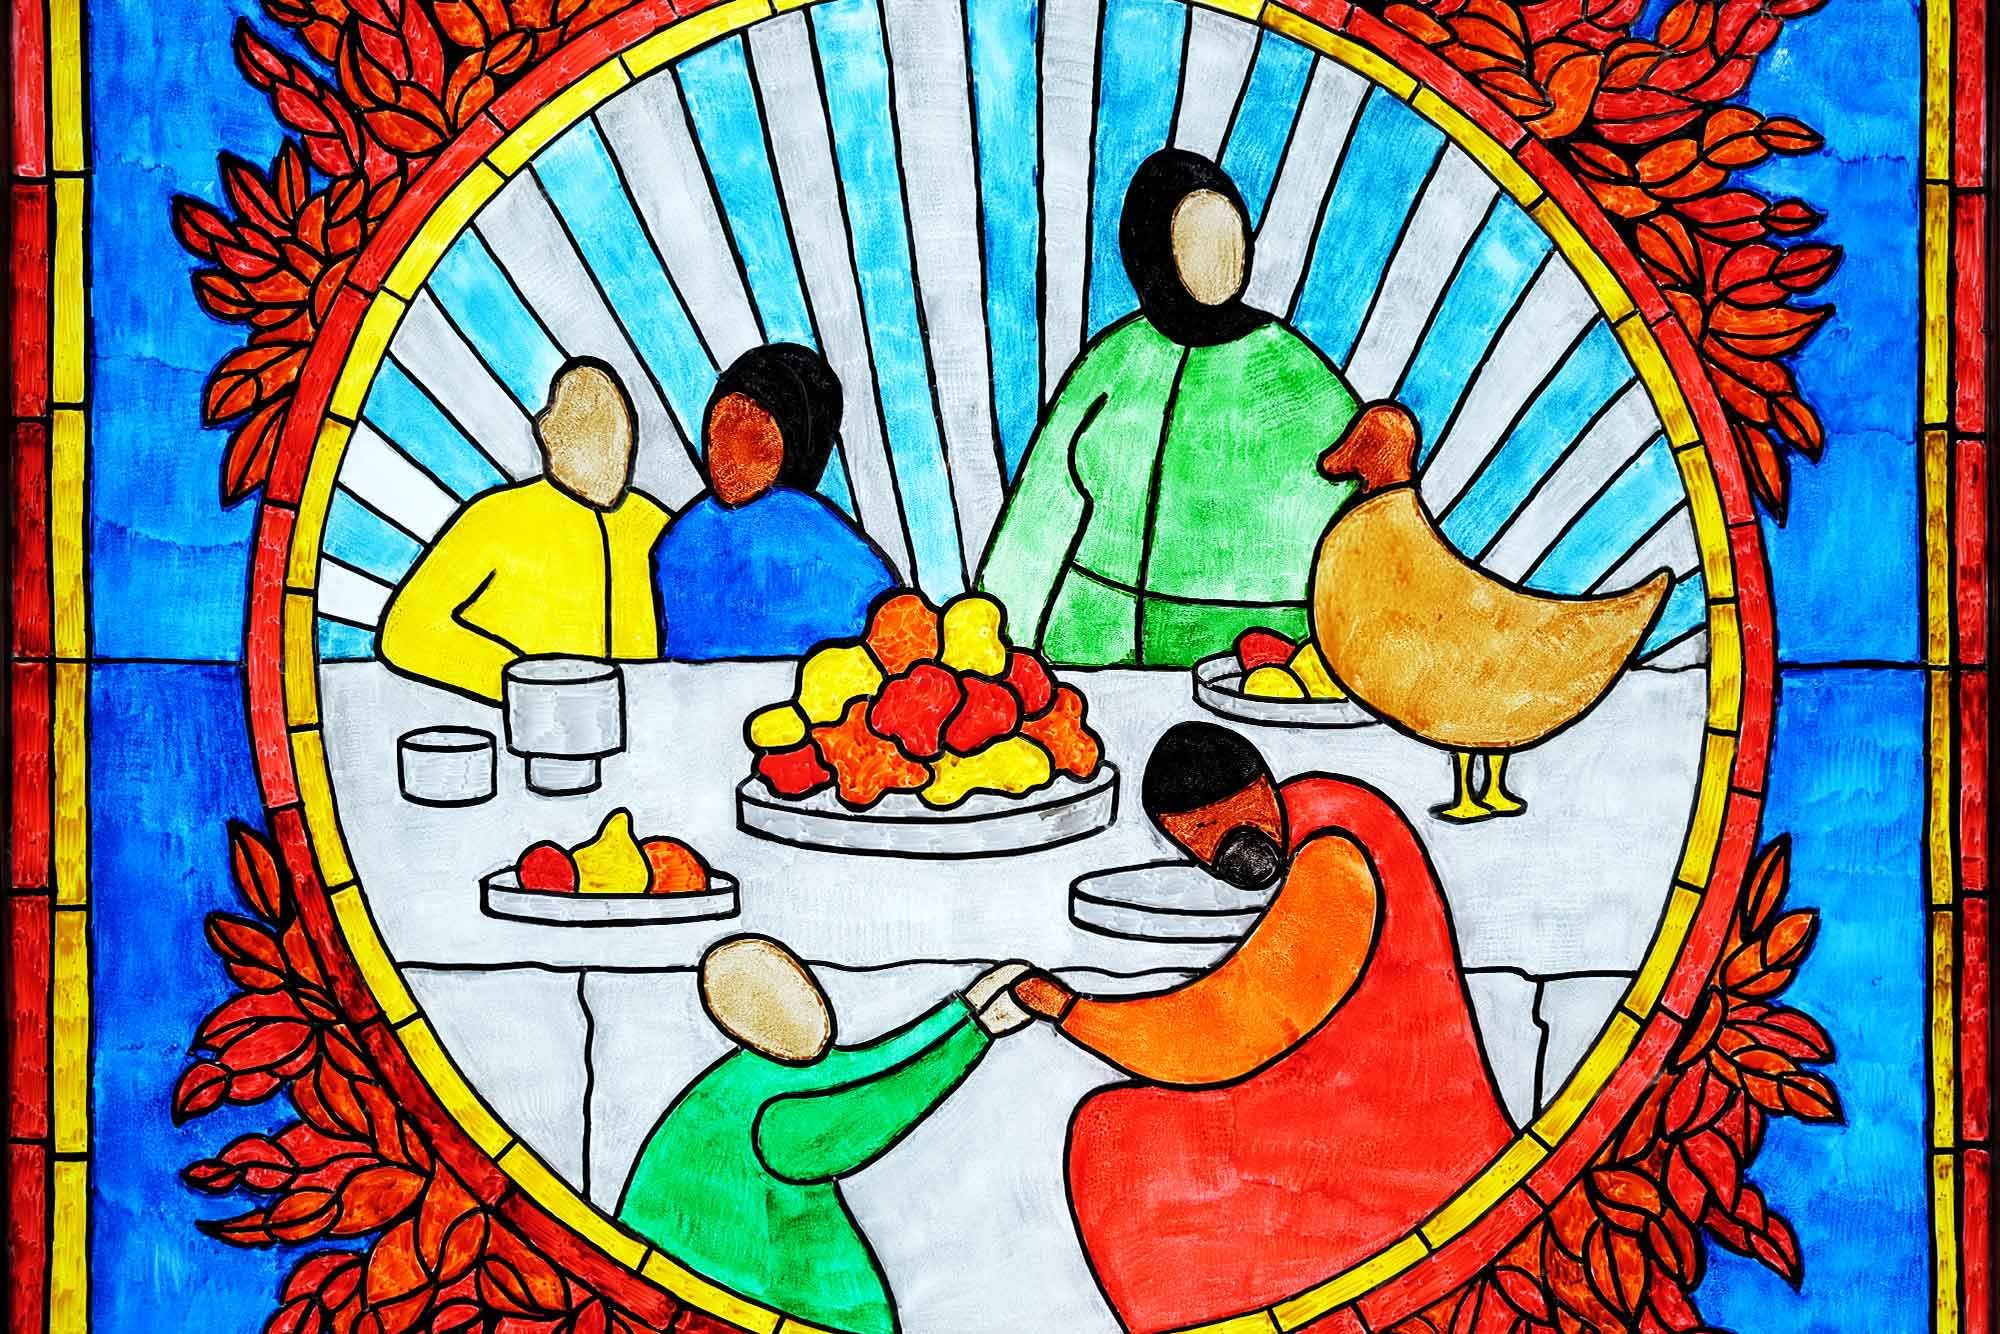 Blue panel detail: family around a table with fruits